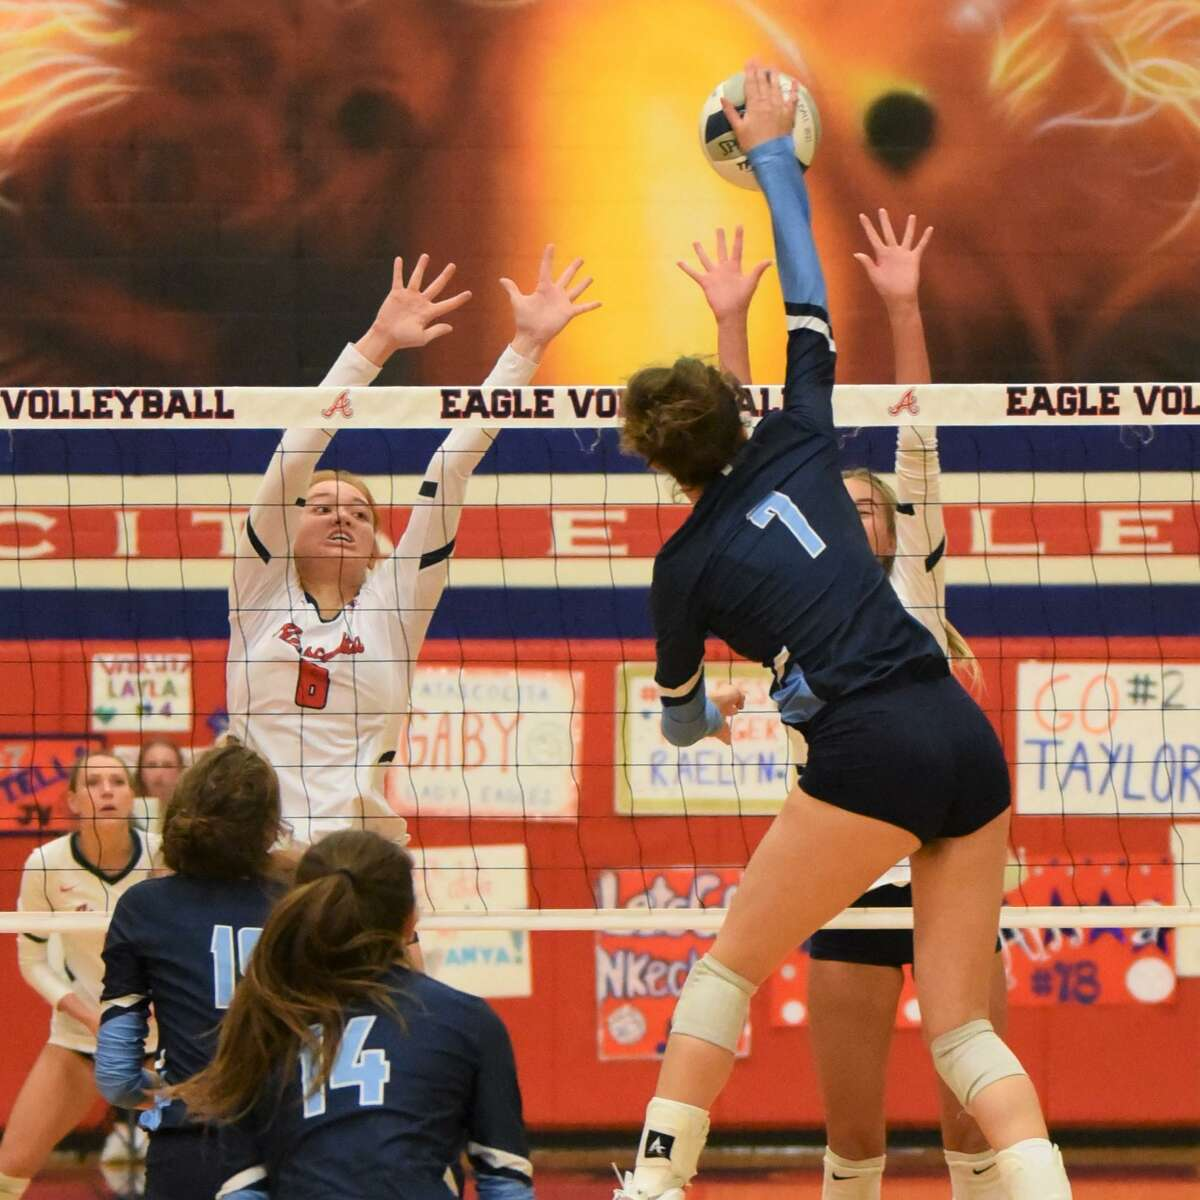 Kingwood's Emma Montes goes for a kill in a District 21-6A match against Atascocita.